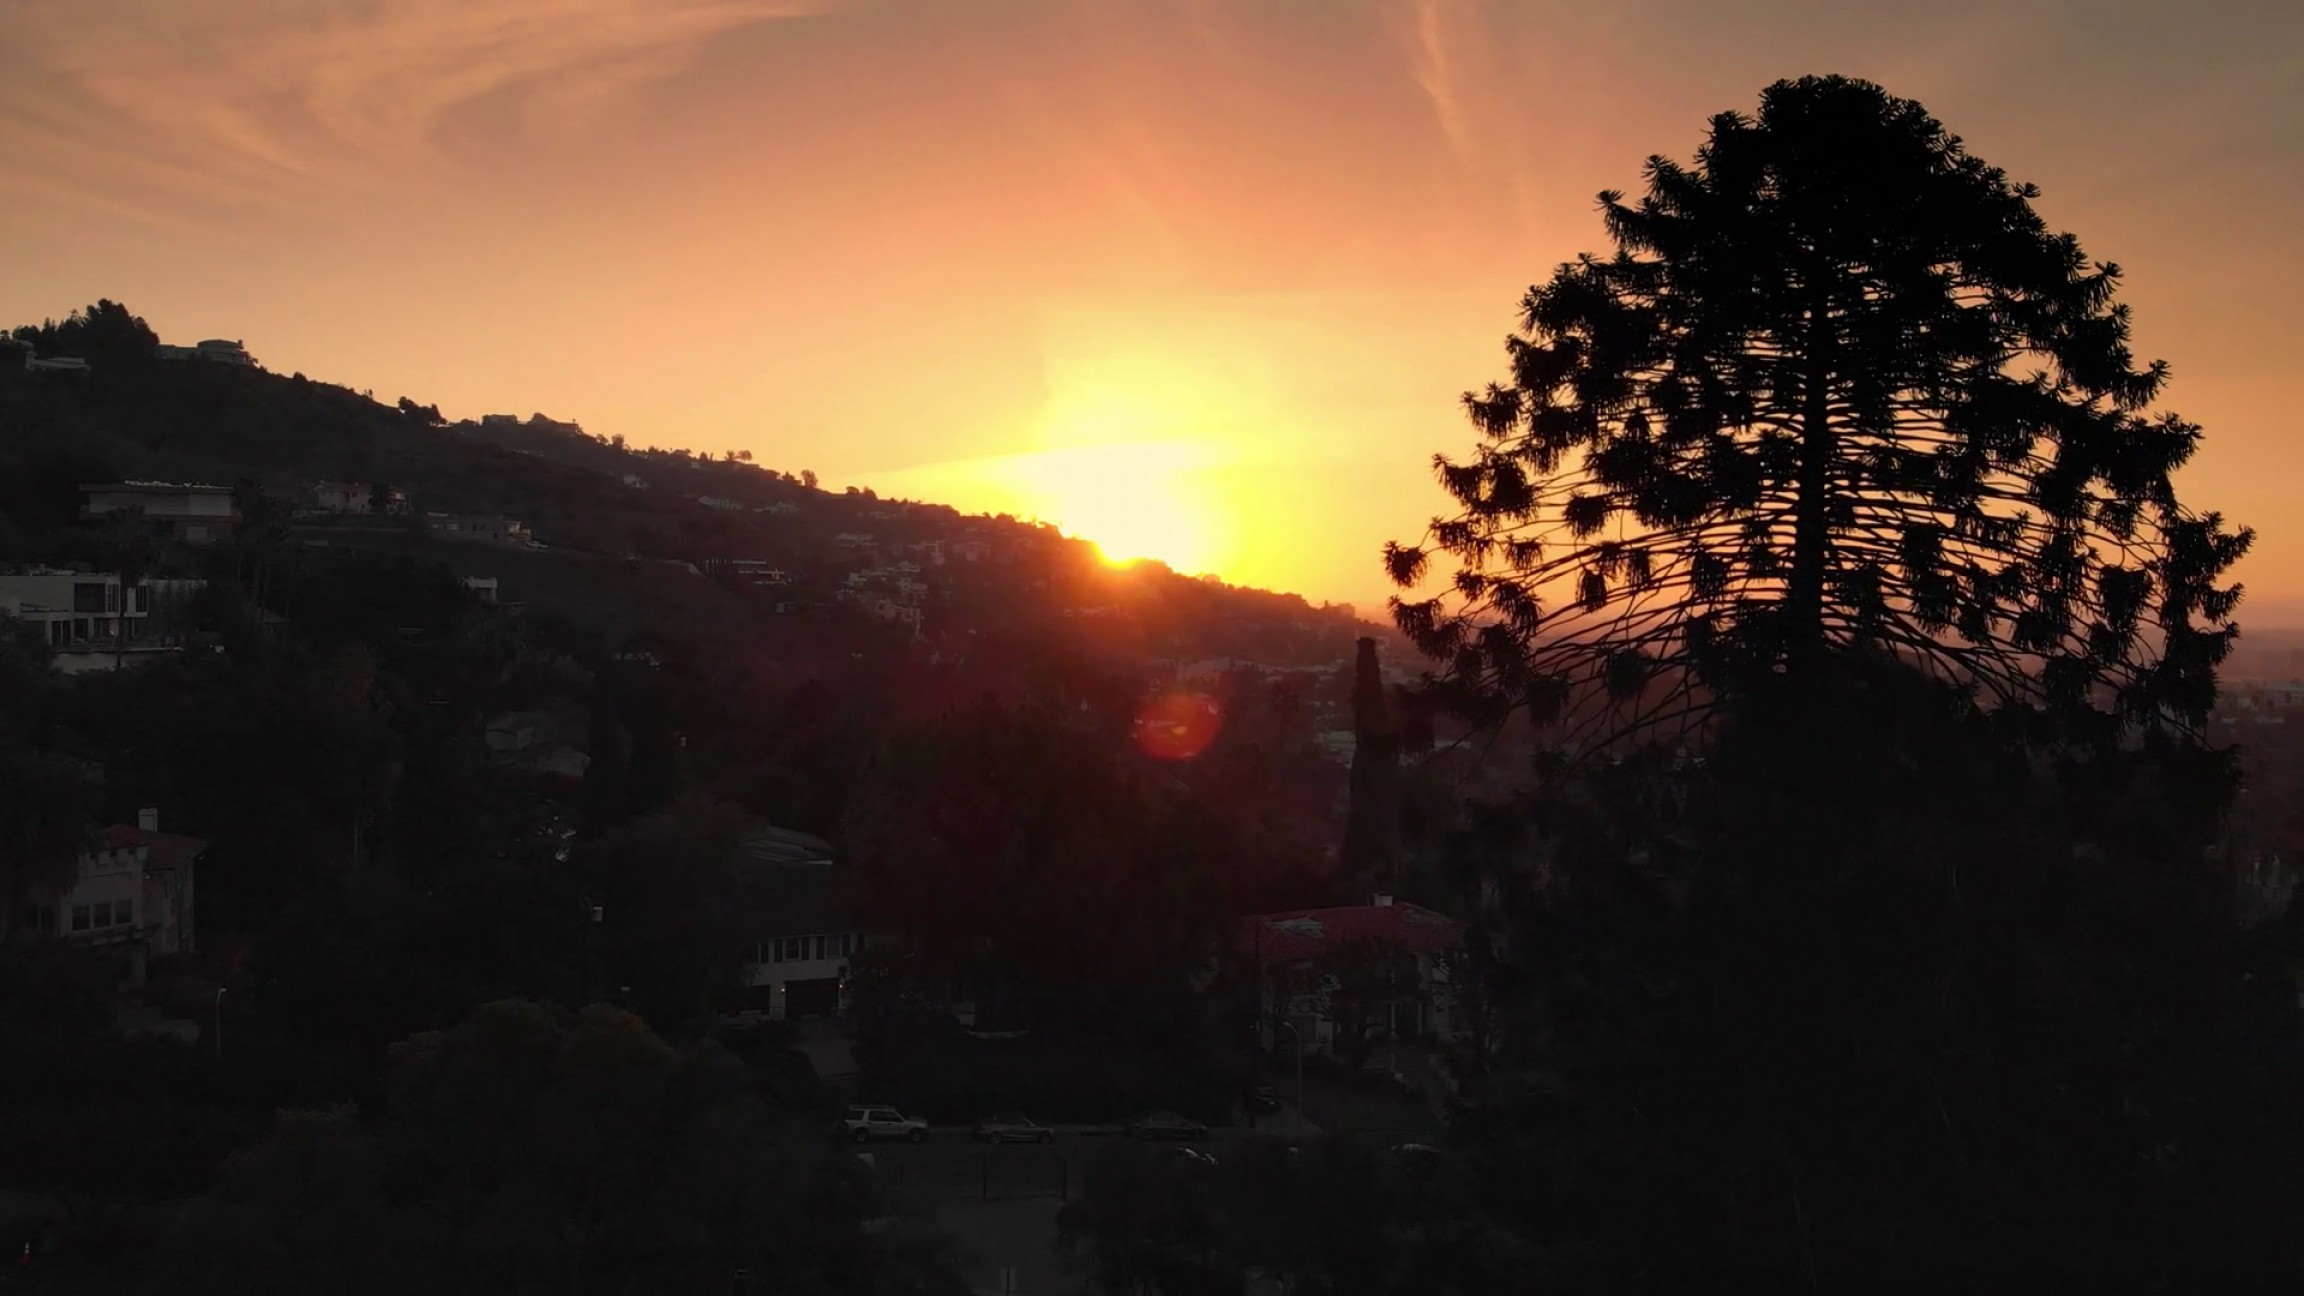 Hollywood Hills Vector: Aerial View Of Sunset Sun Peaking Over Hollywood Hills Skyline Los Angeles Cityscape In Background K Uhd H Pdtghifjdgvqee